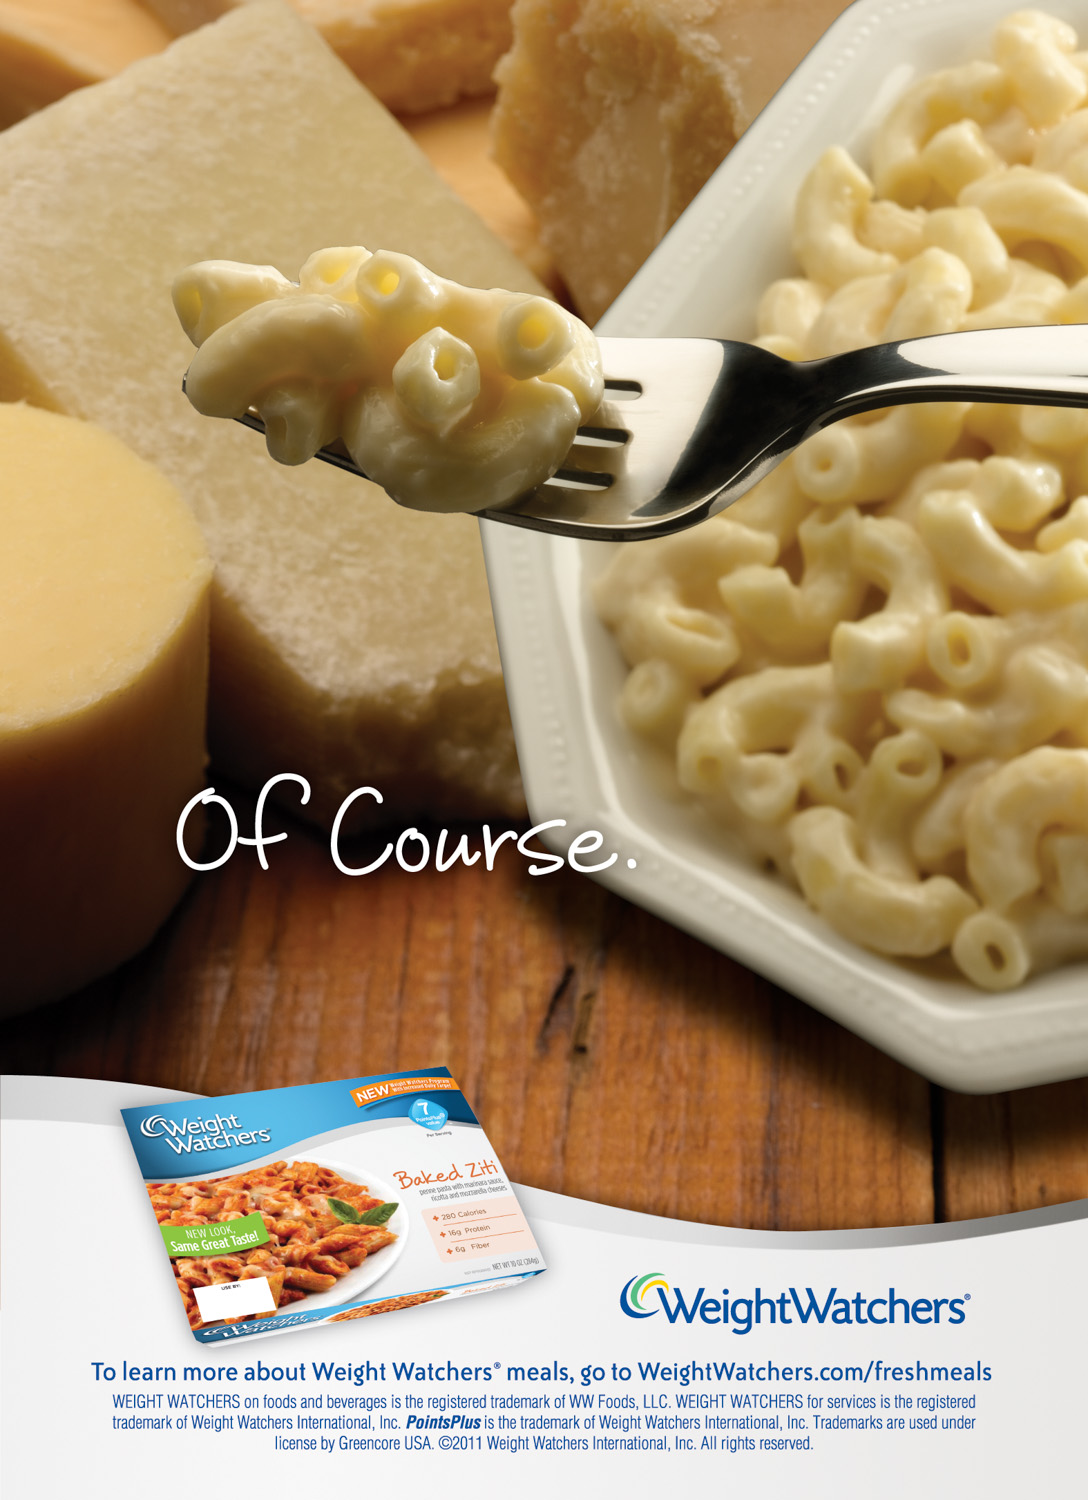 Weight Watcher Macaroni & Cheese Ad